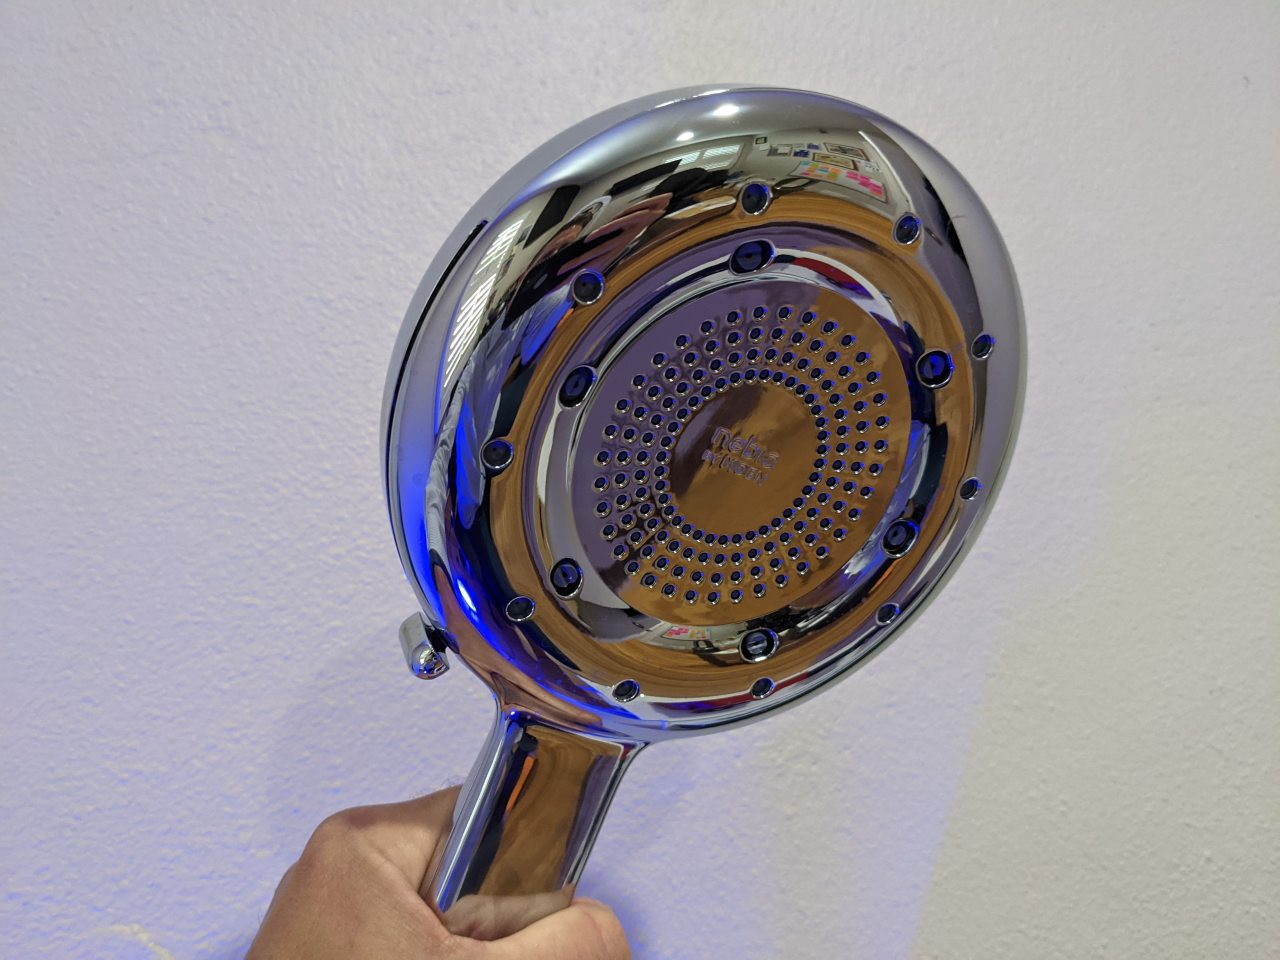 High-tech shower head makes it hard to believe it's actually saving water